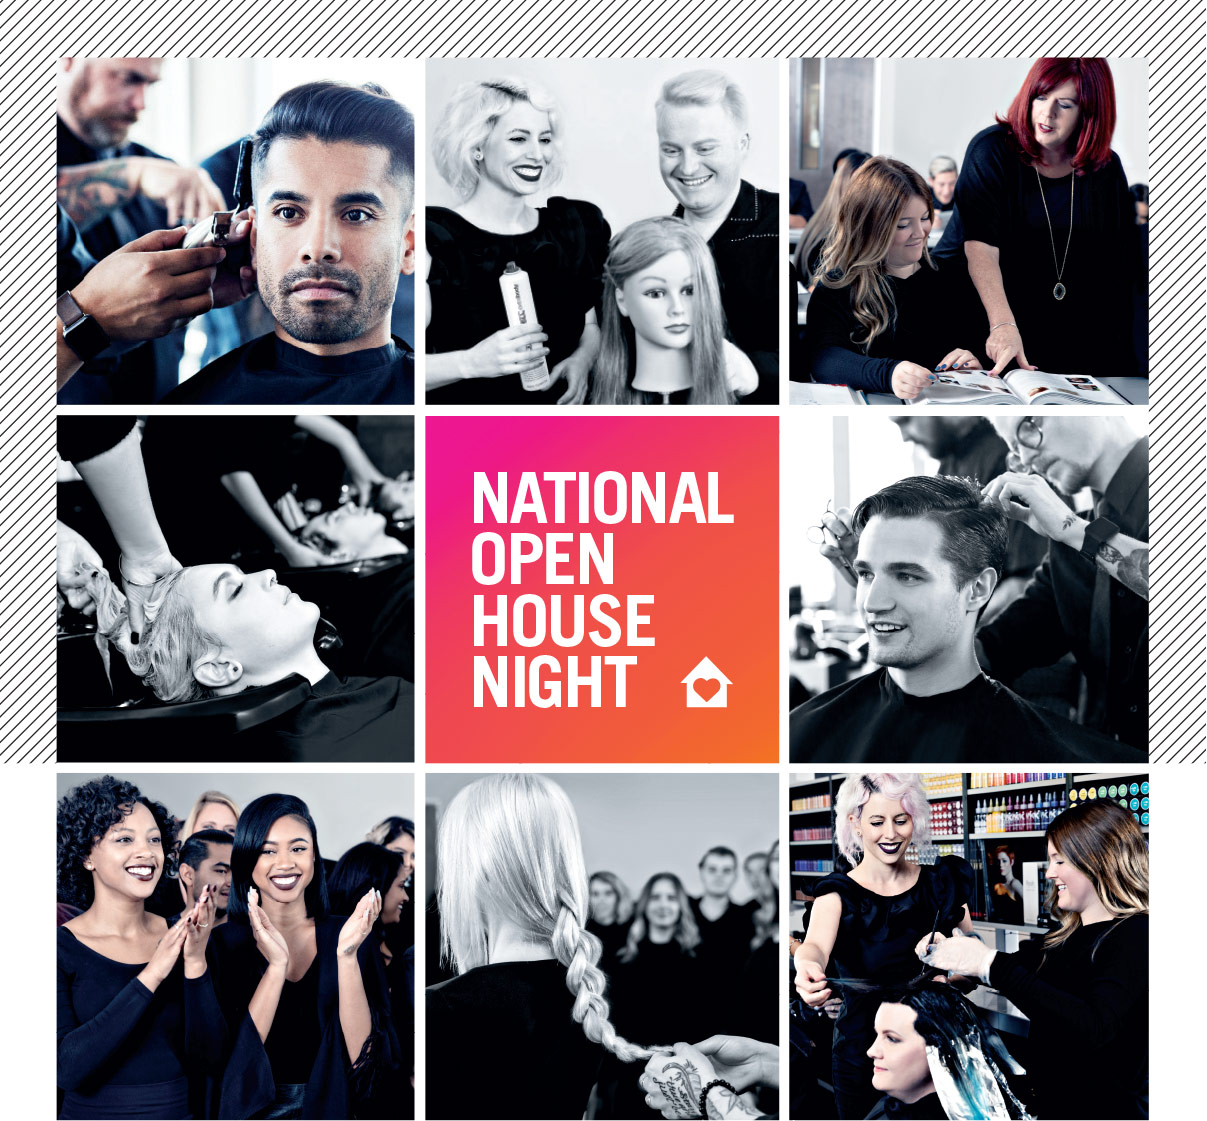 image of the national open house night campaign